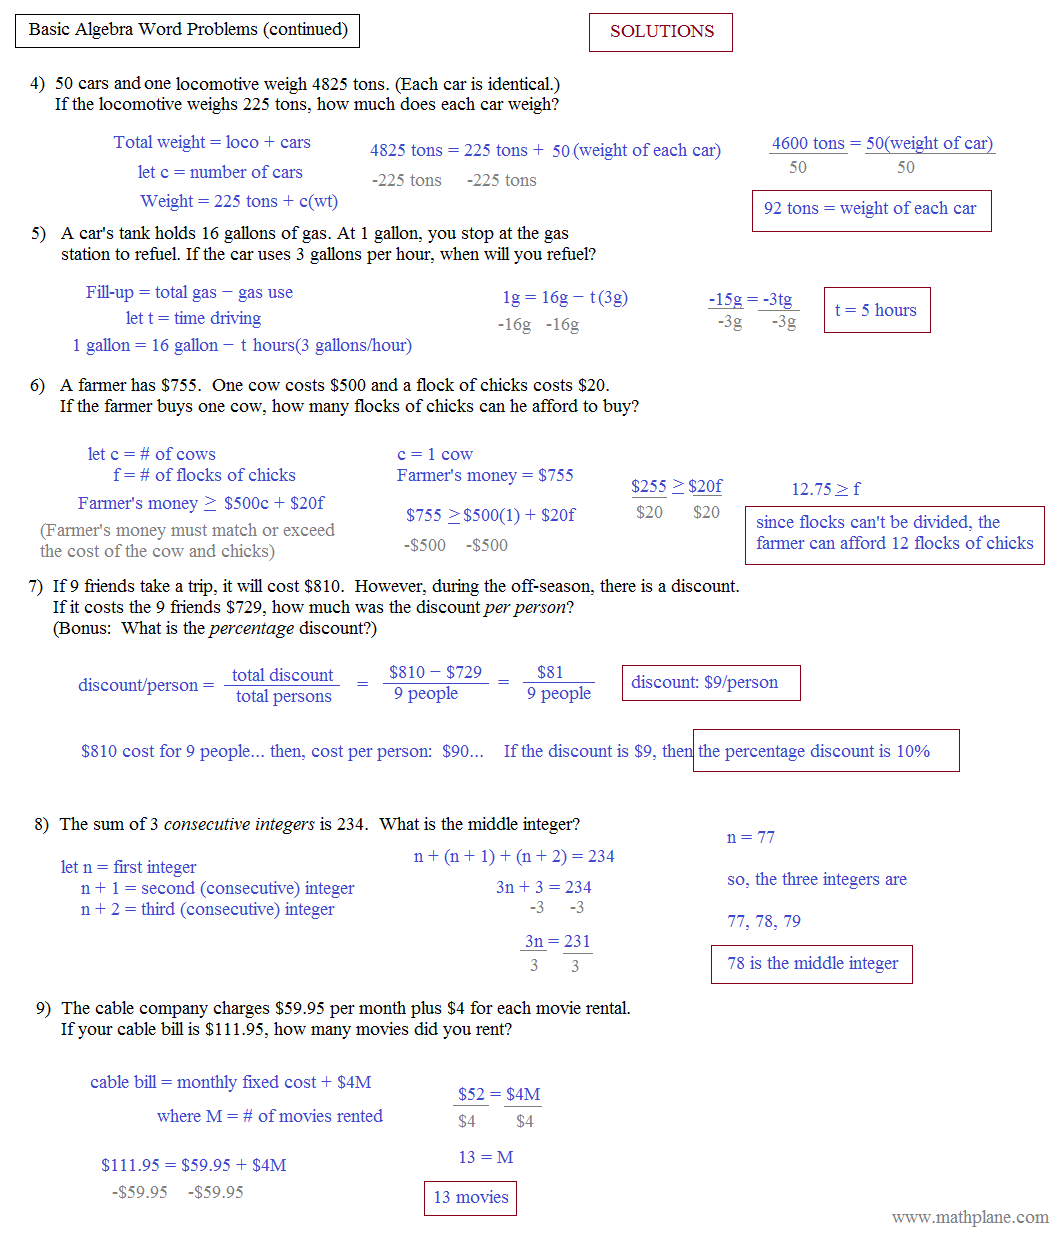 Worksheets Right Triangle Word Problems Worksheet math plane algebra word problems basic 2 solutions